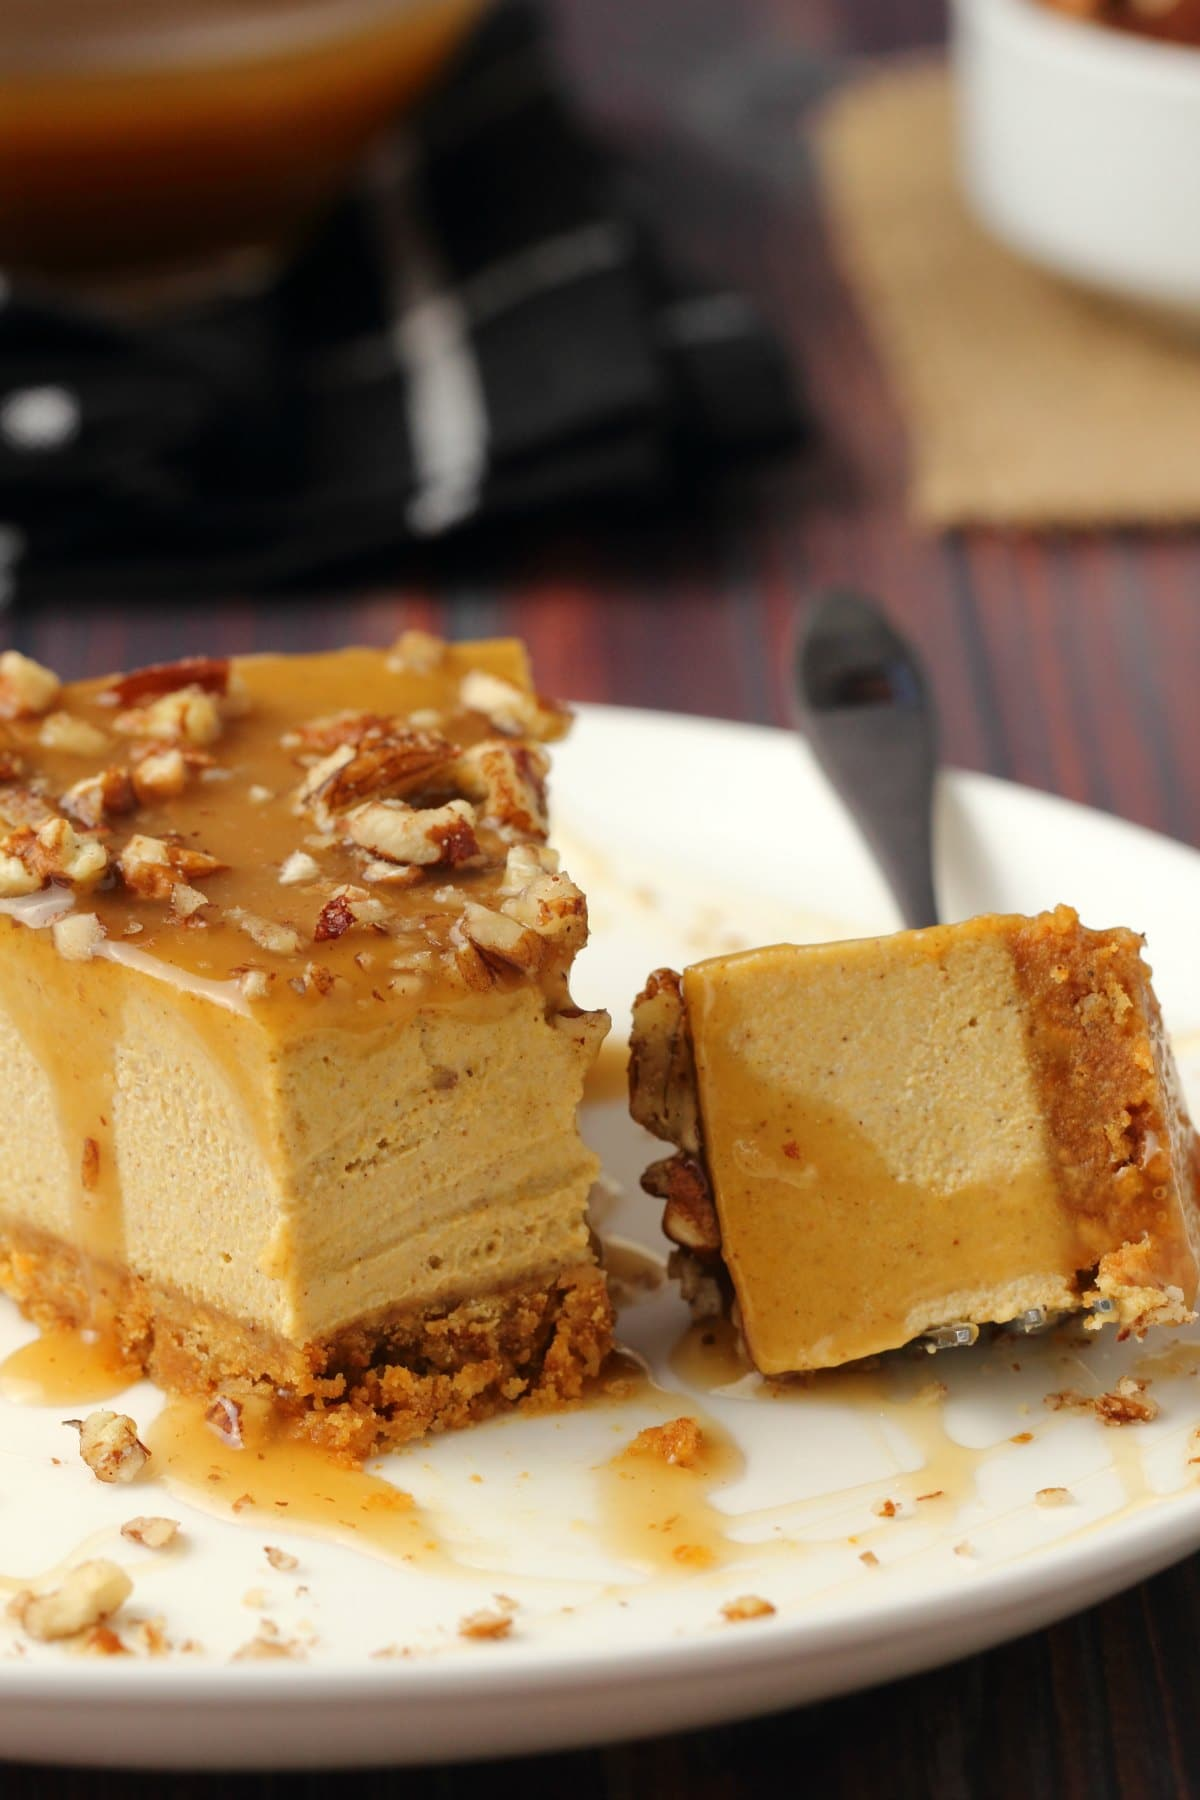 A slice of vegan pumpkin cheesecake topped with caramel sauce and crushed pecans on a white plate with a cake fork.